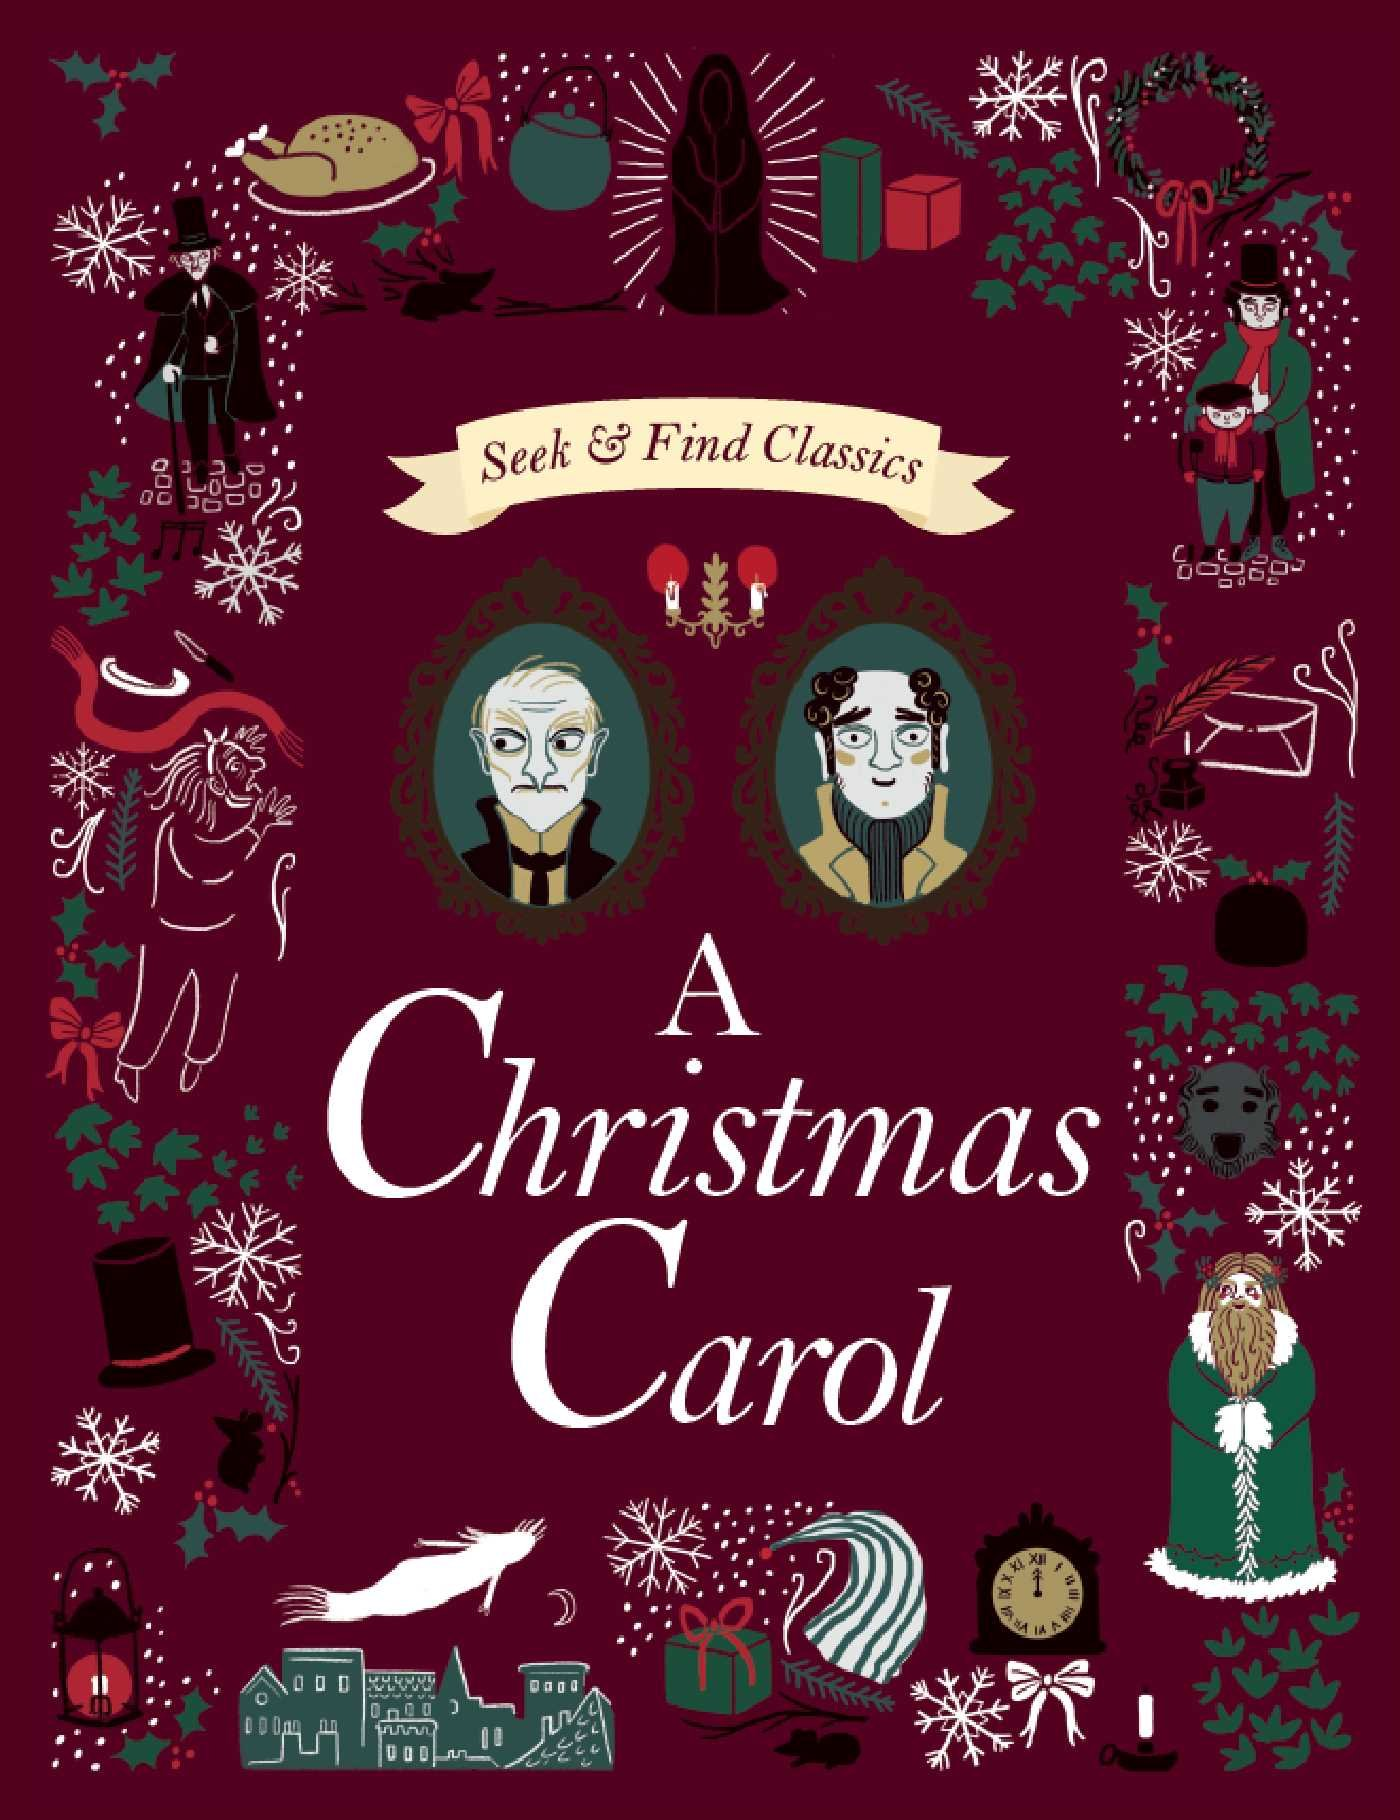 A Christmas Carol Characters.A Christmas Carol Seek And Find Classics Sarah Powell